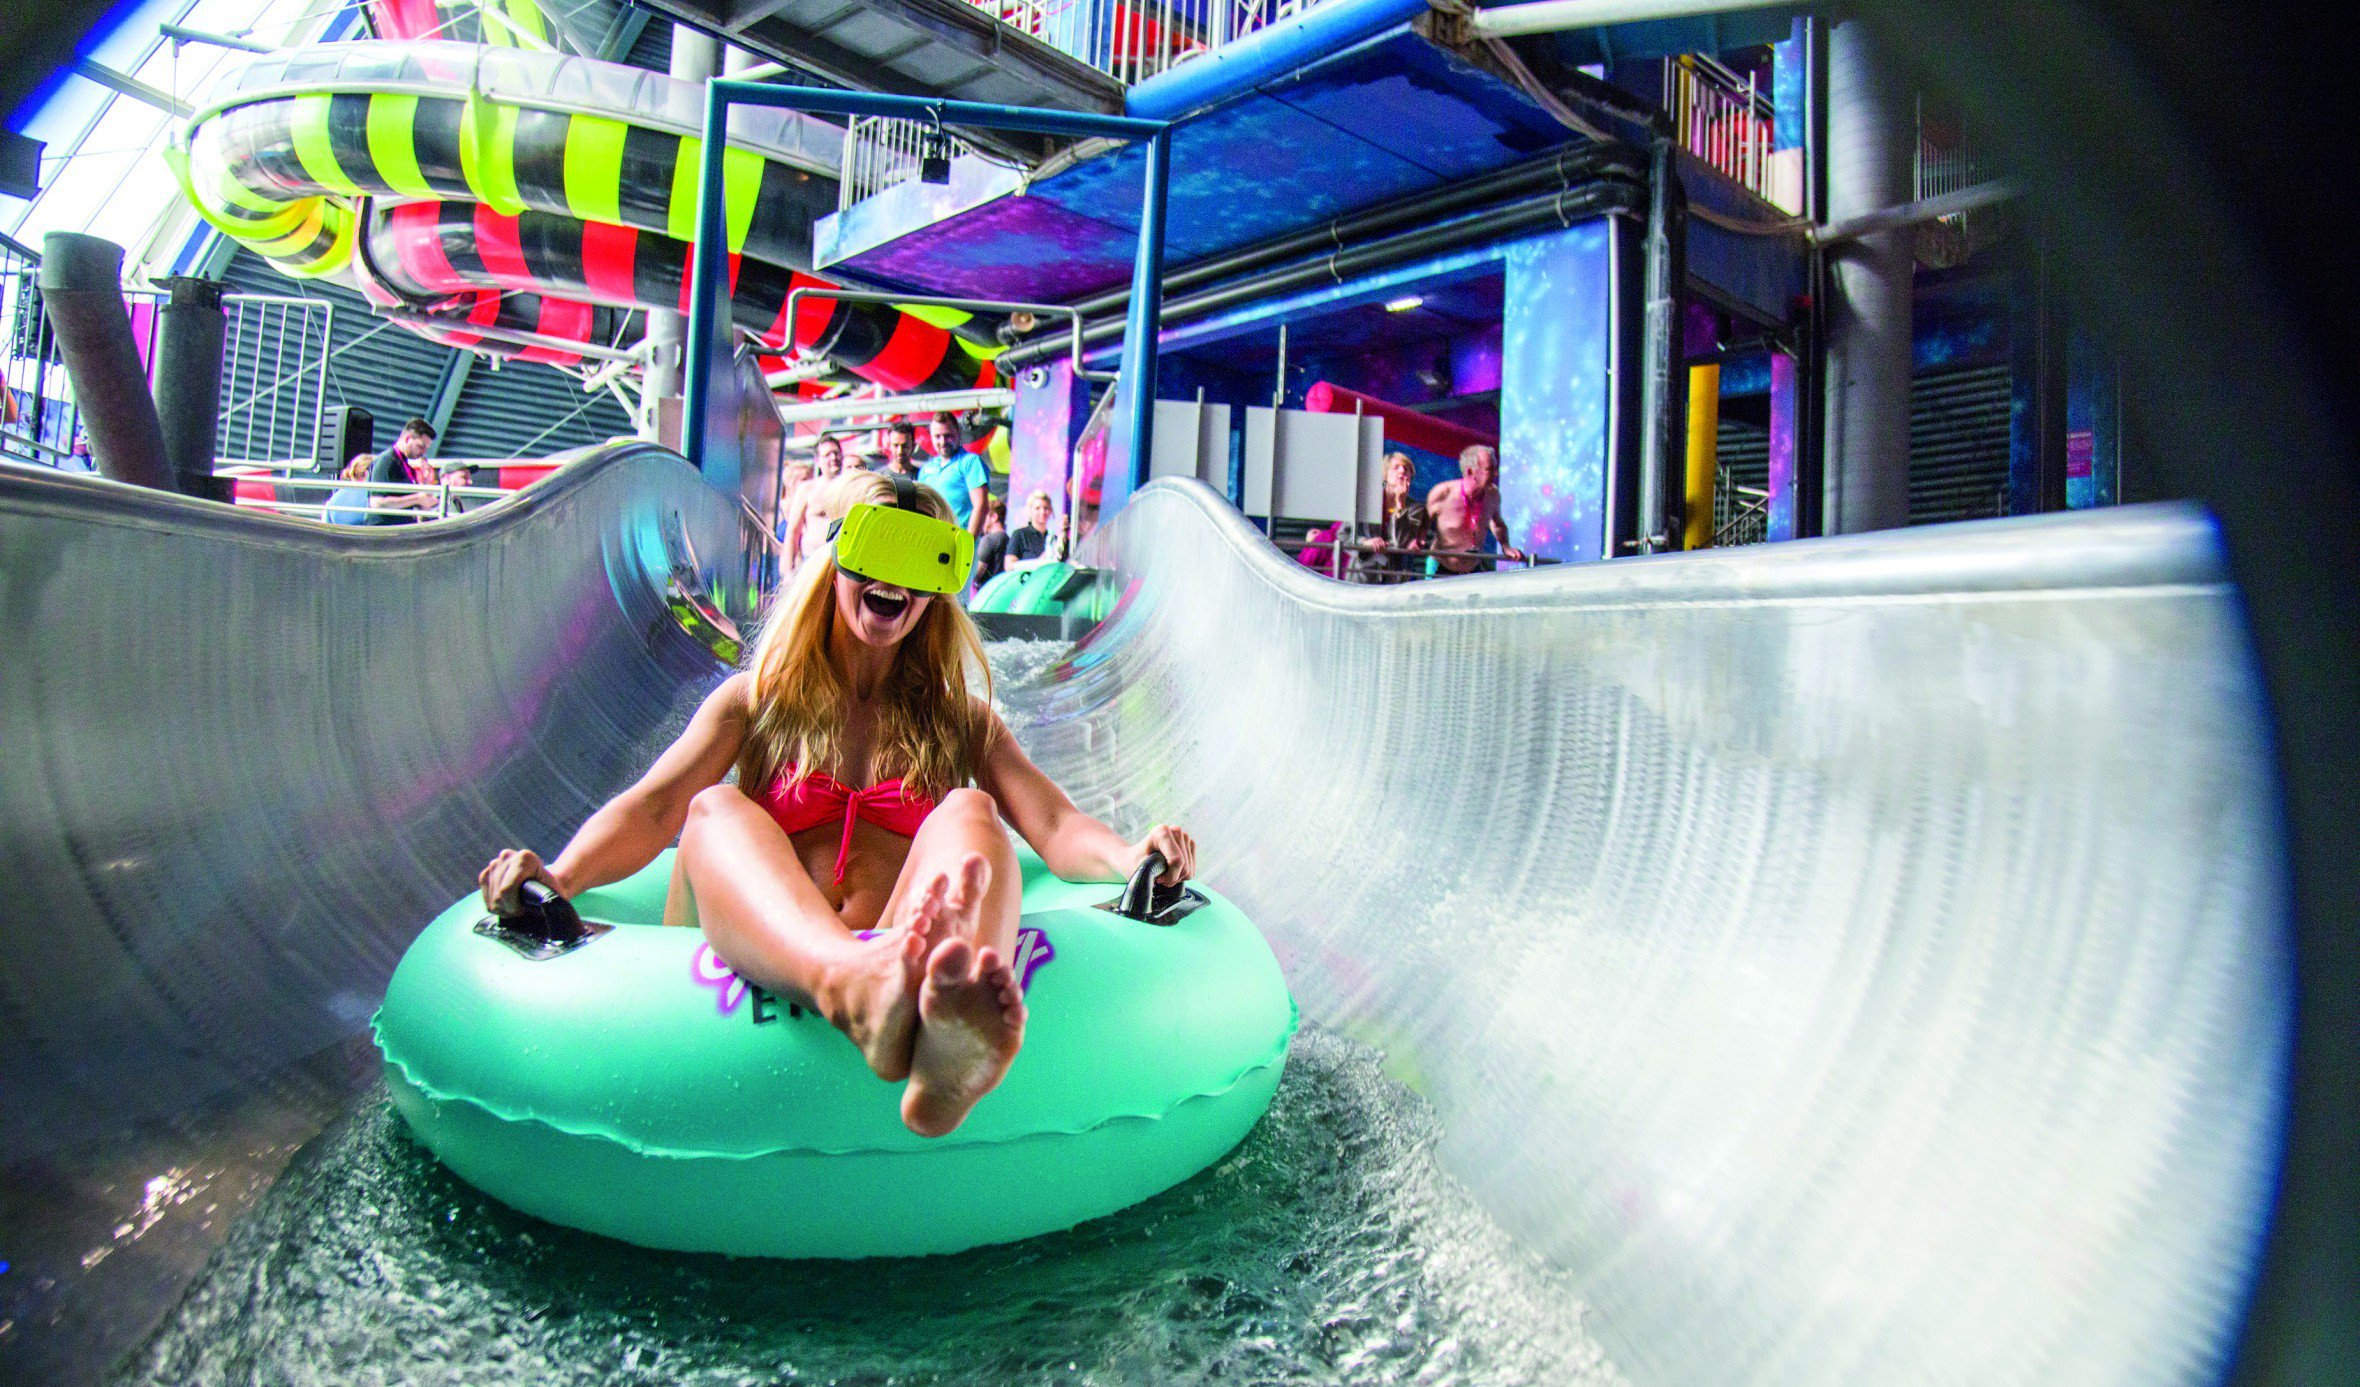 World S First Virtual Reality Water Slide Opens In Germany